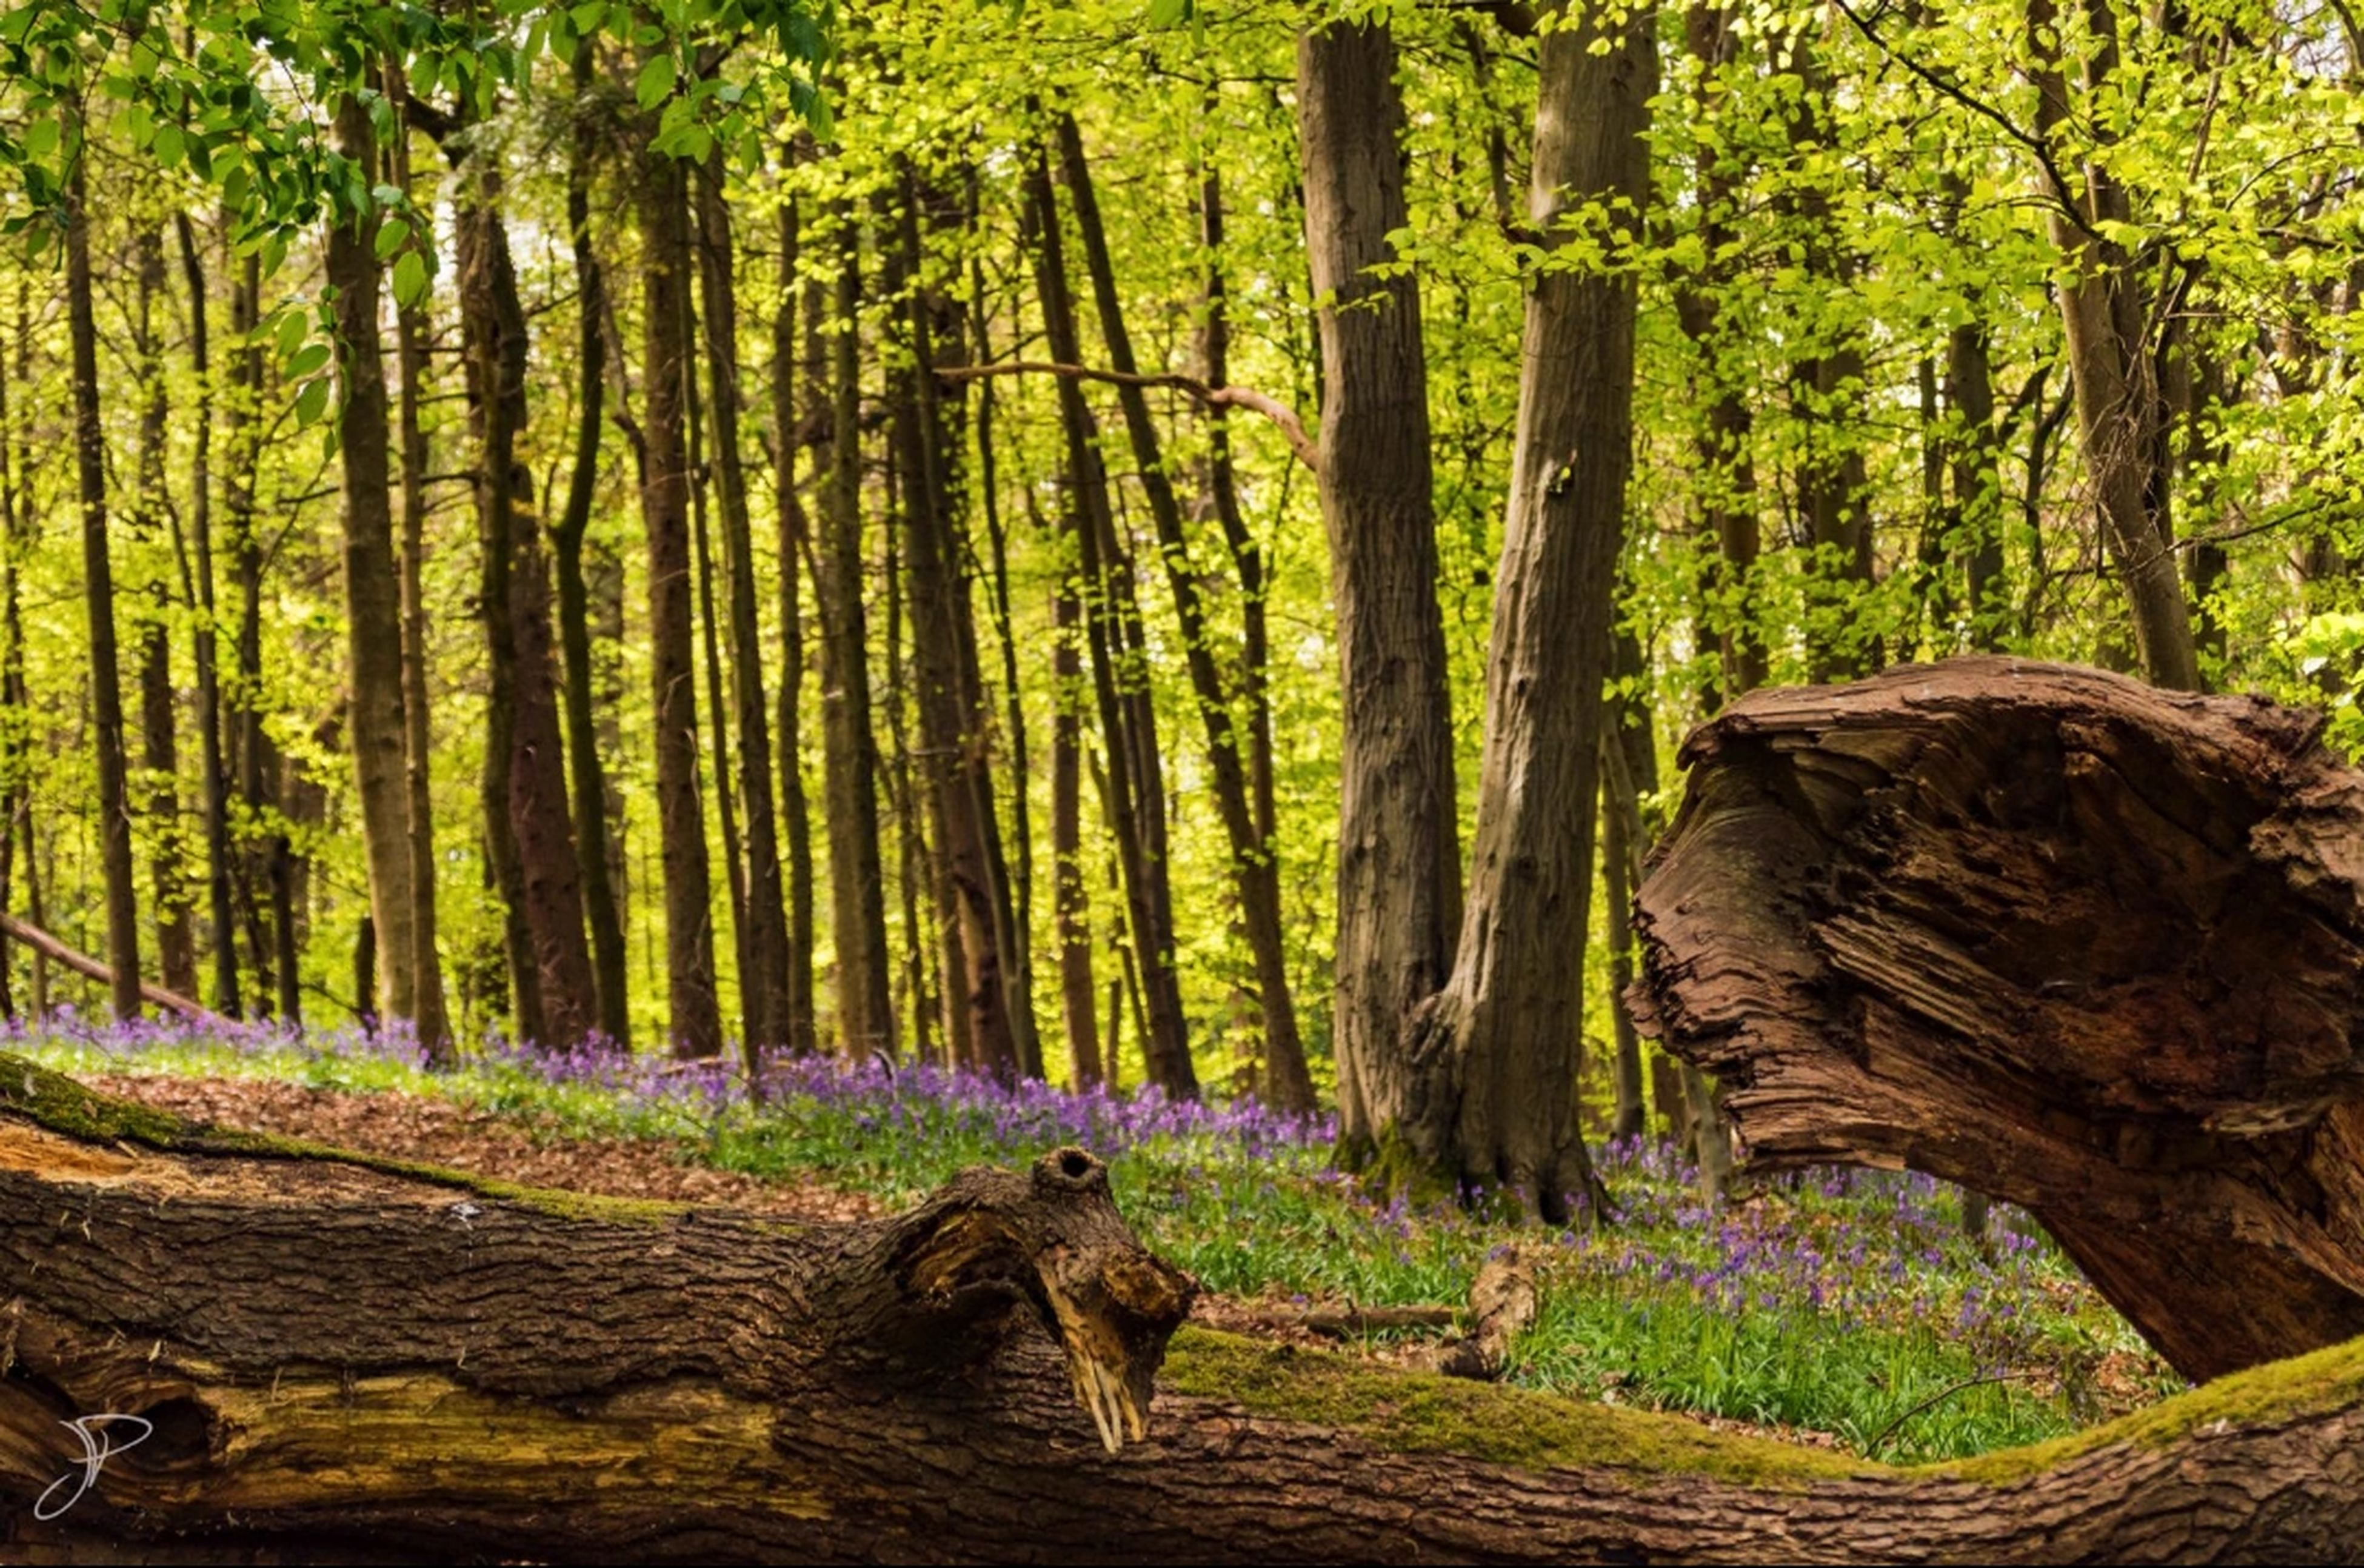 forest, tree, nature, sunlight, tree trunk, landscape, no people, animal, animal themes, outdoors, beauty in nature, mammal, domestic animals, animals in the wild, day